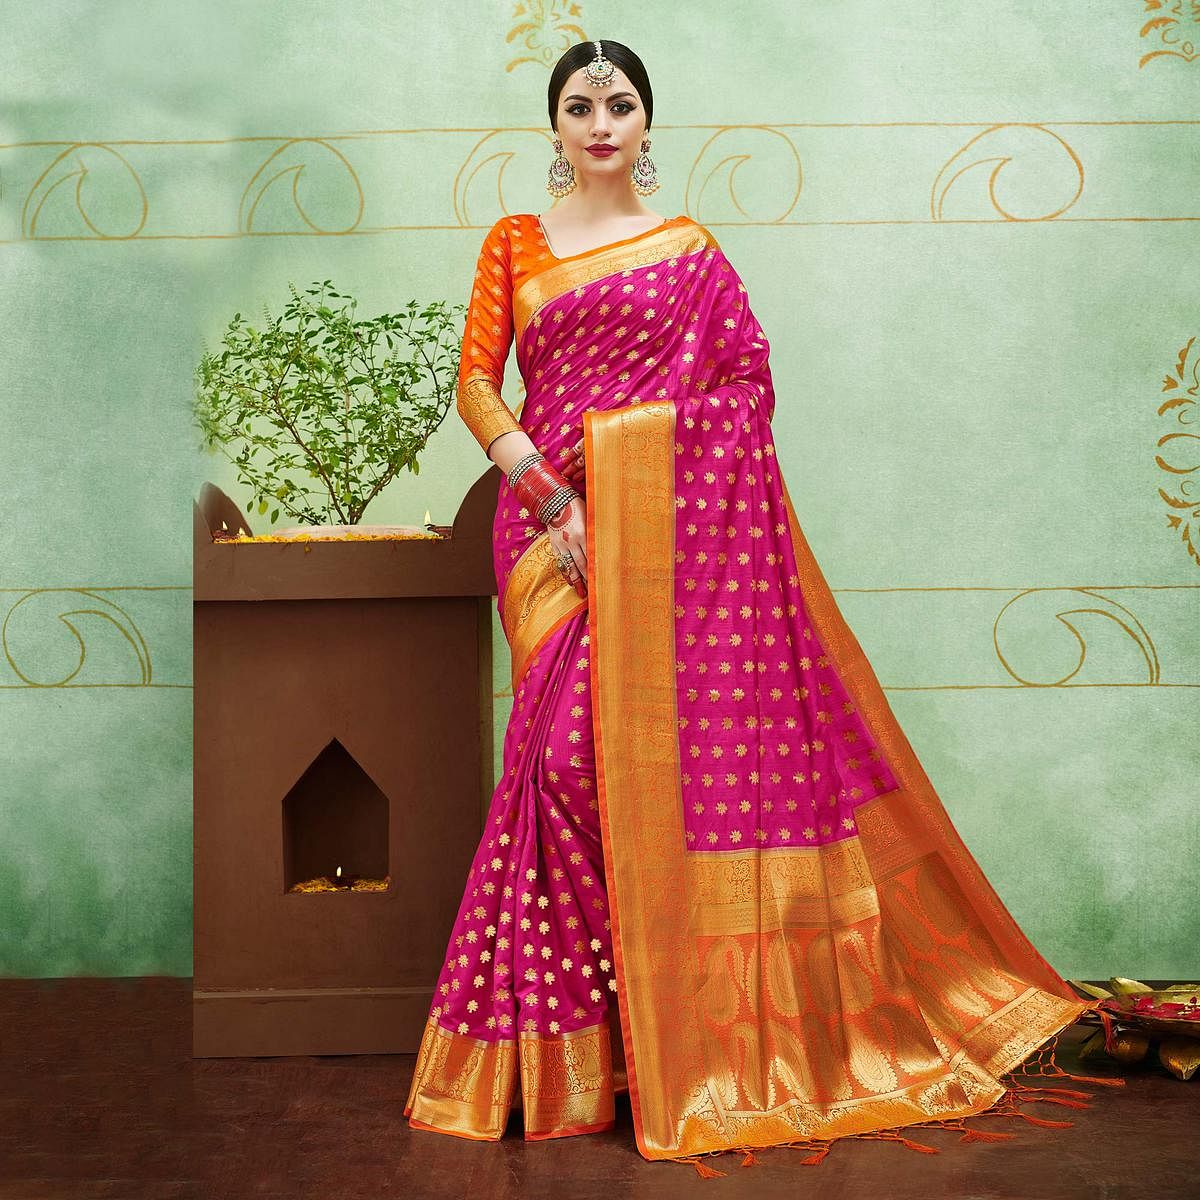 1ece0bb45c Buy Trendy Rani Pink Colored Festive Wear Woven Banarasi Silk Saree for  womens online India, Best Prices, Reviews - Peachmode